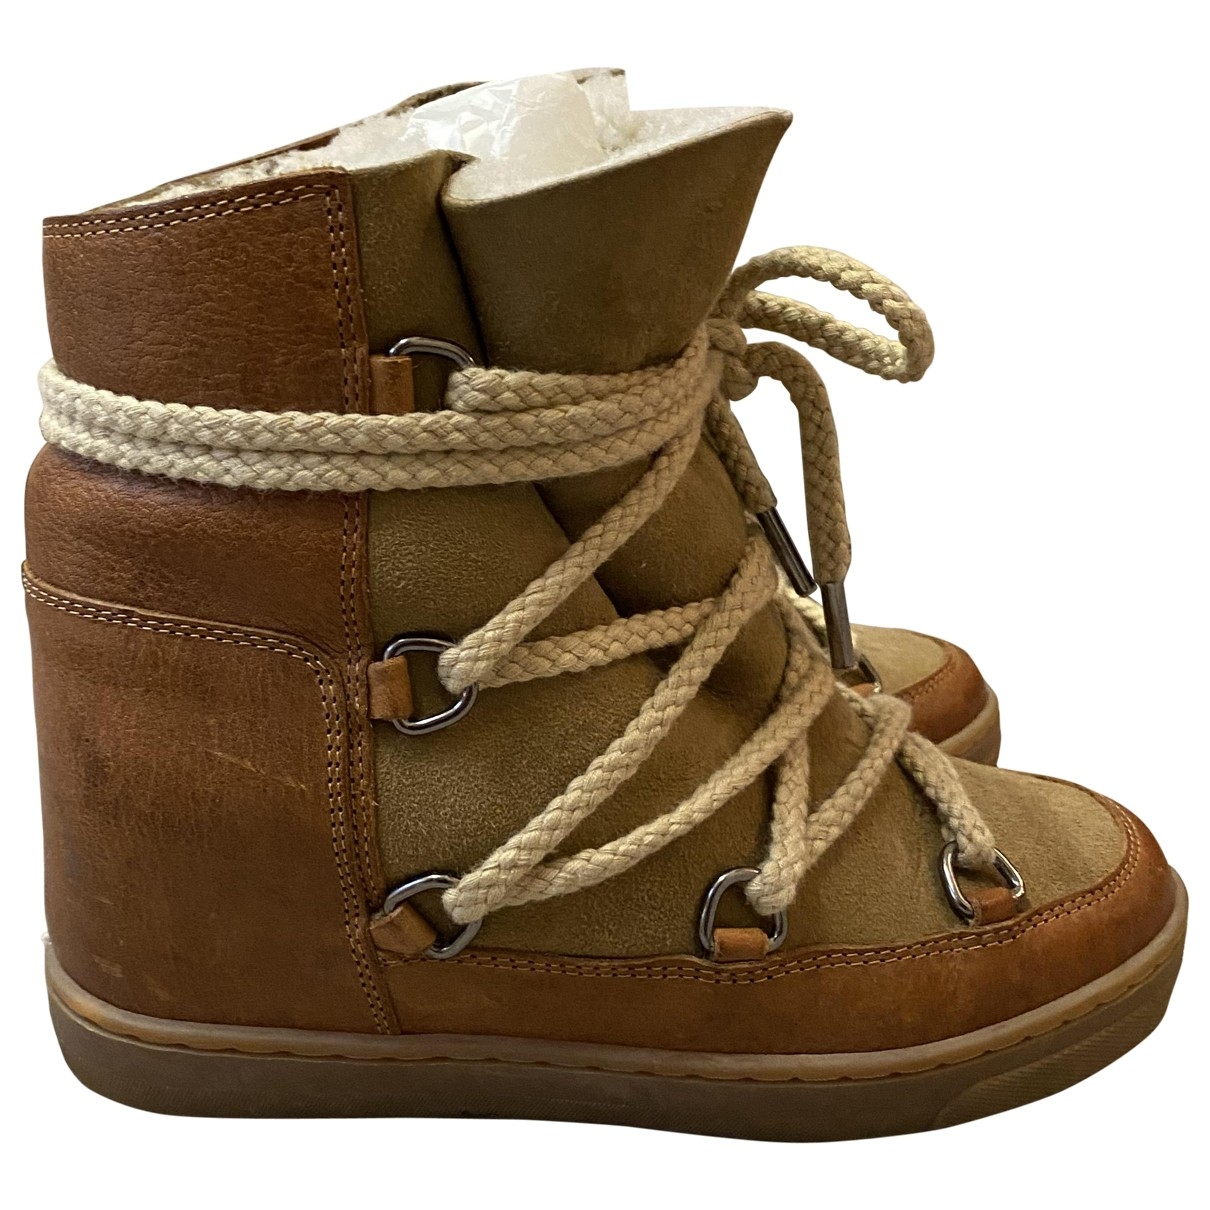 Isabel Marant Nowles Camel Leather Ankle boots for Women 35 EU